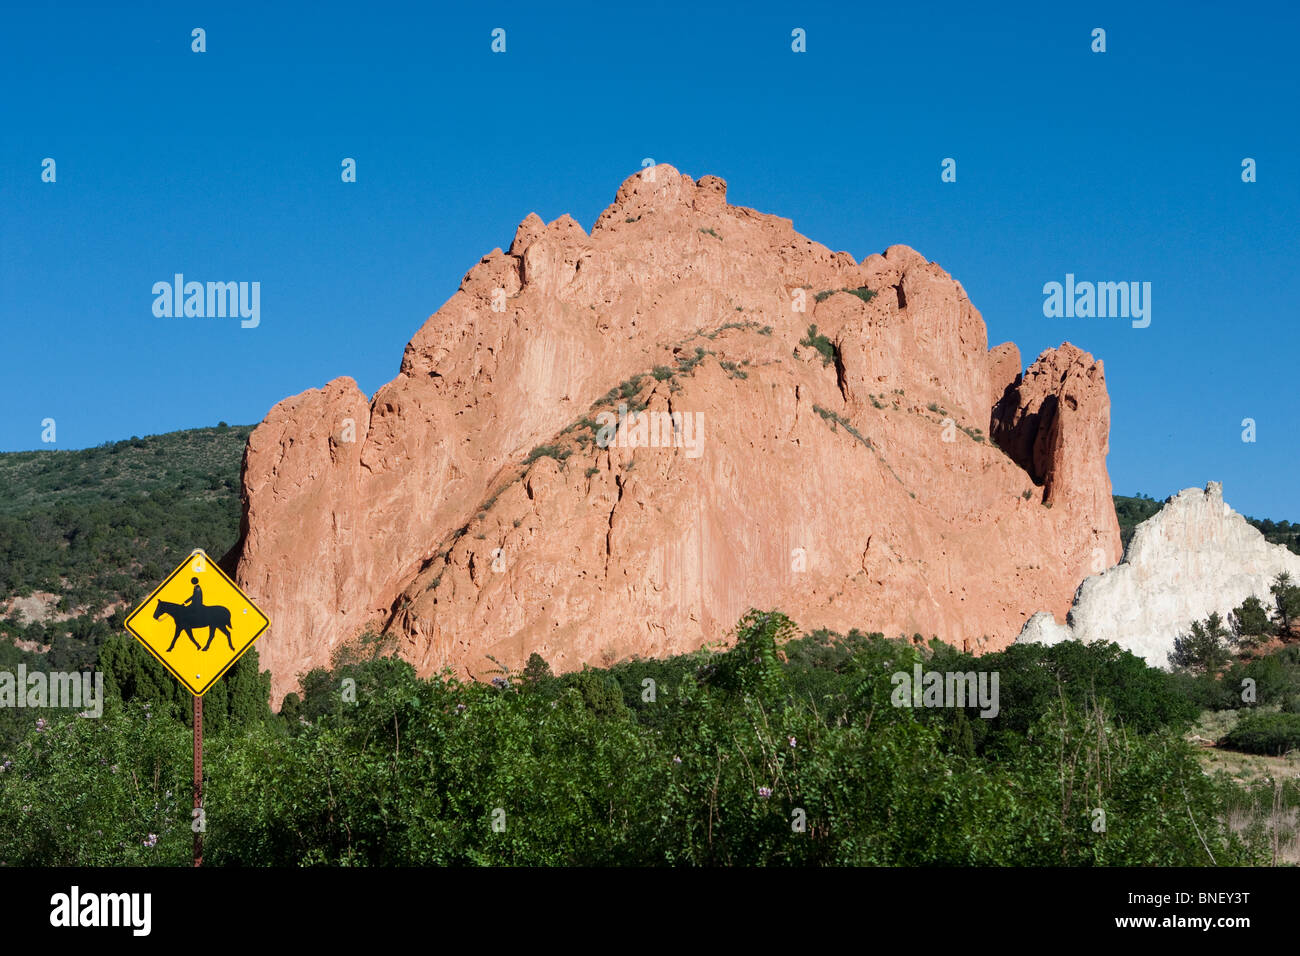 Garden of the Gods Colorado Red Rock formations road horse crossing sign - Stock Image